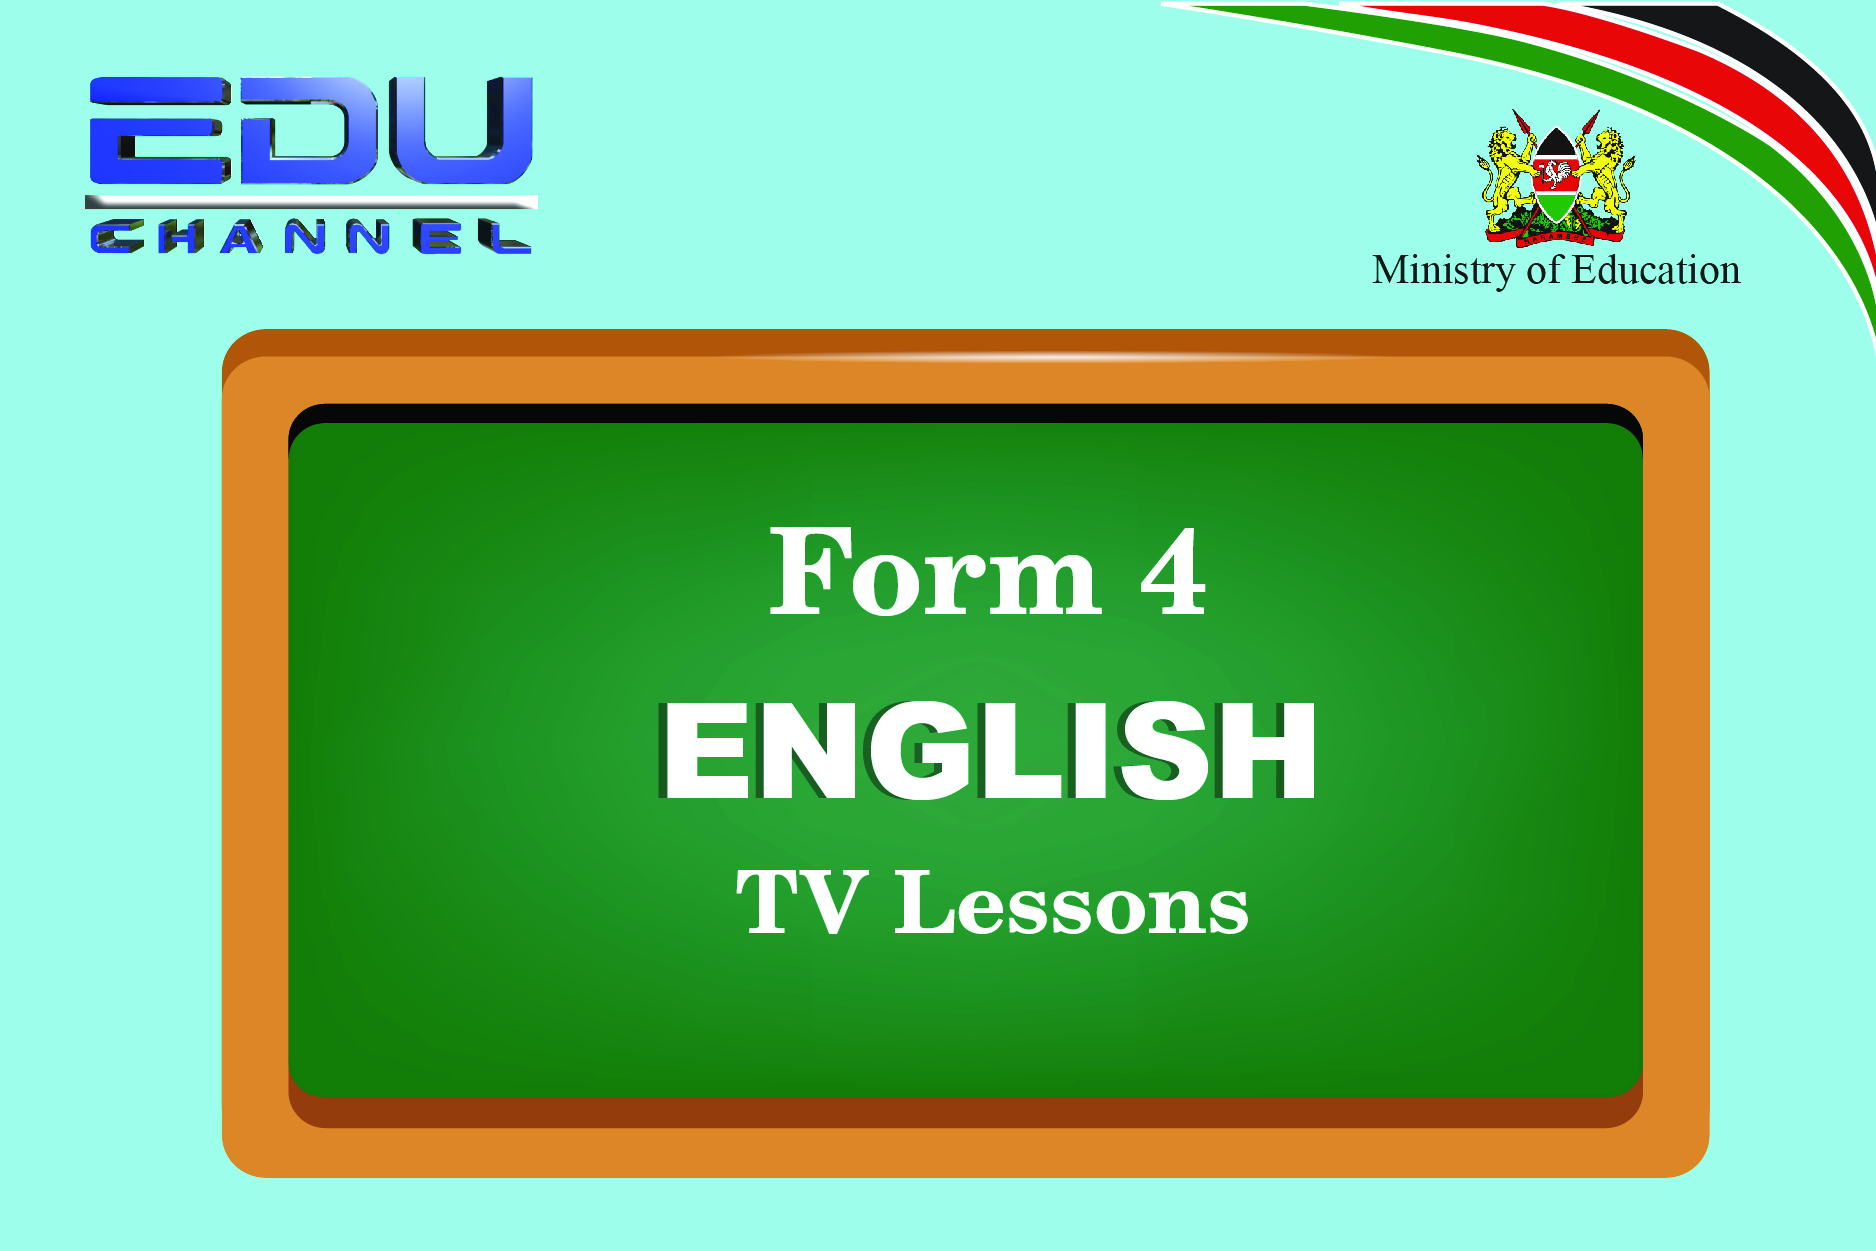 Form 4 English  Lesson 8: Writing - Synopsis book review